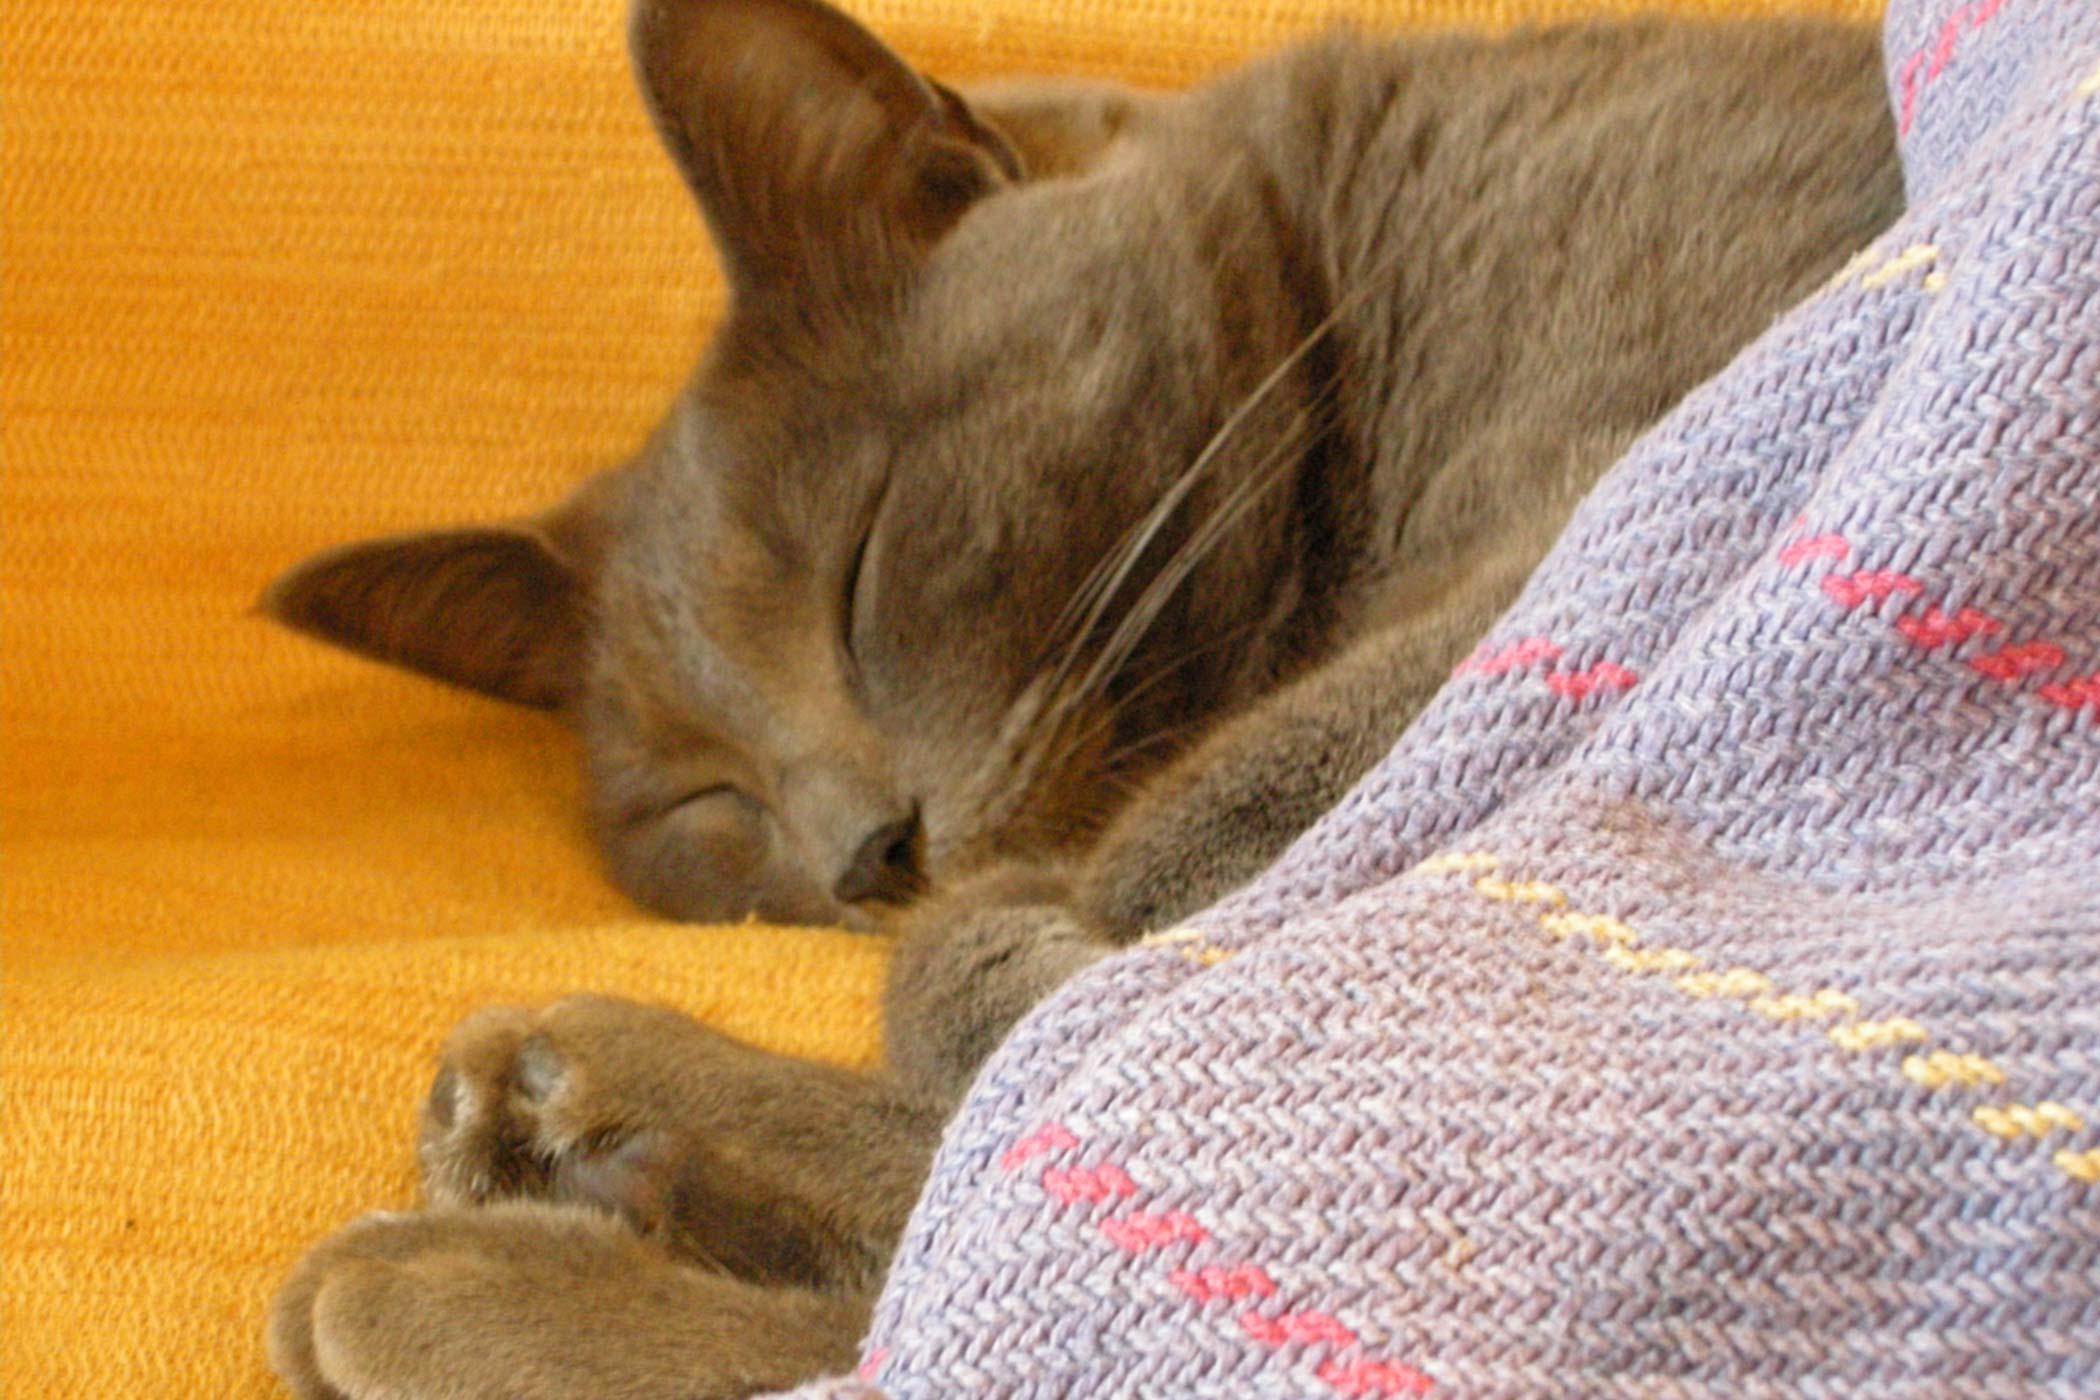 Yeast Infection and Thrush in Cats